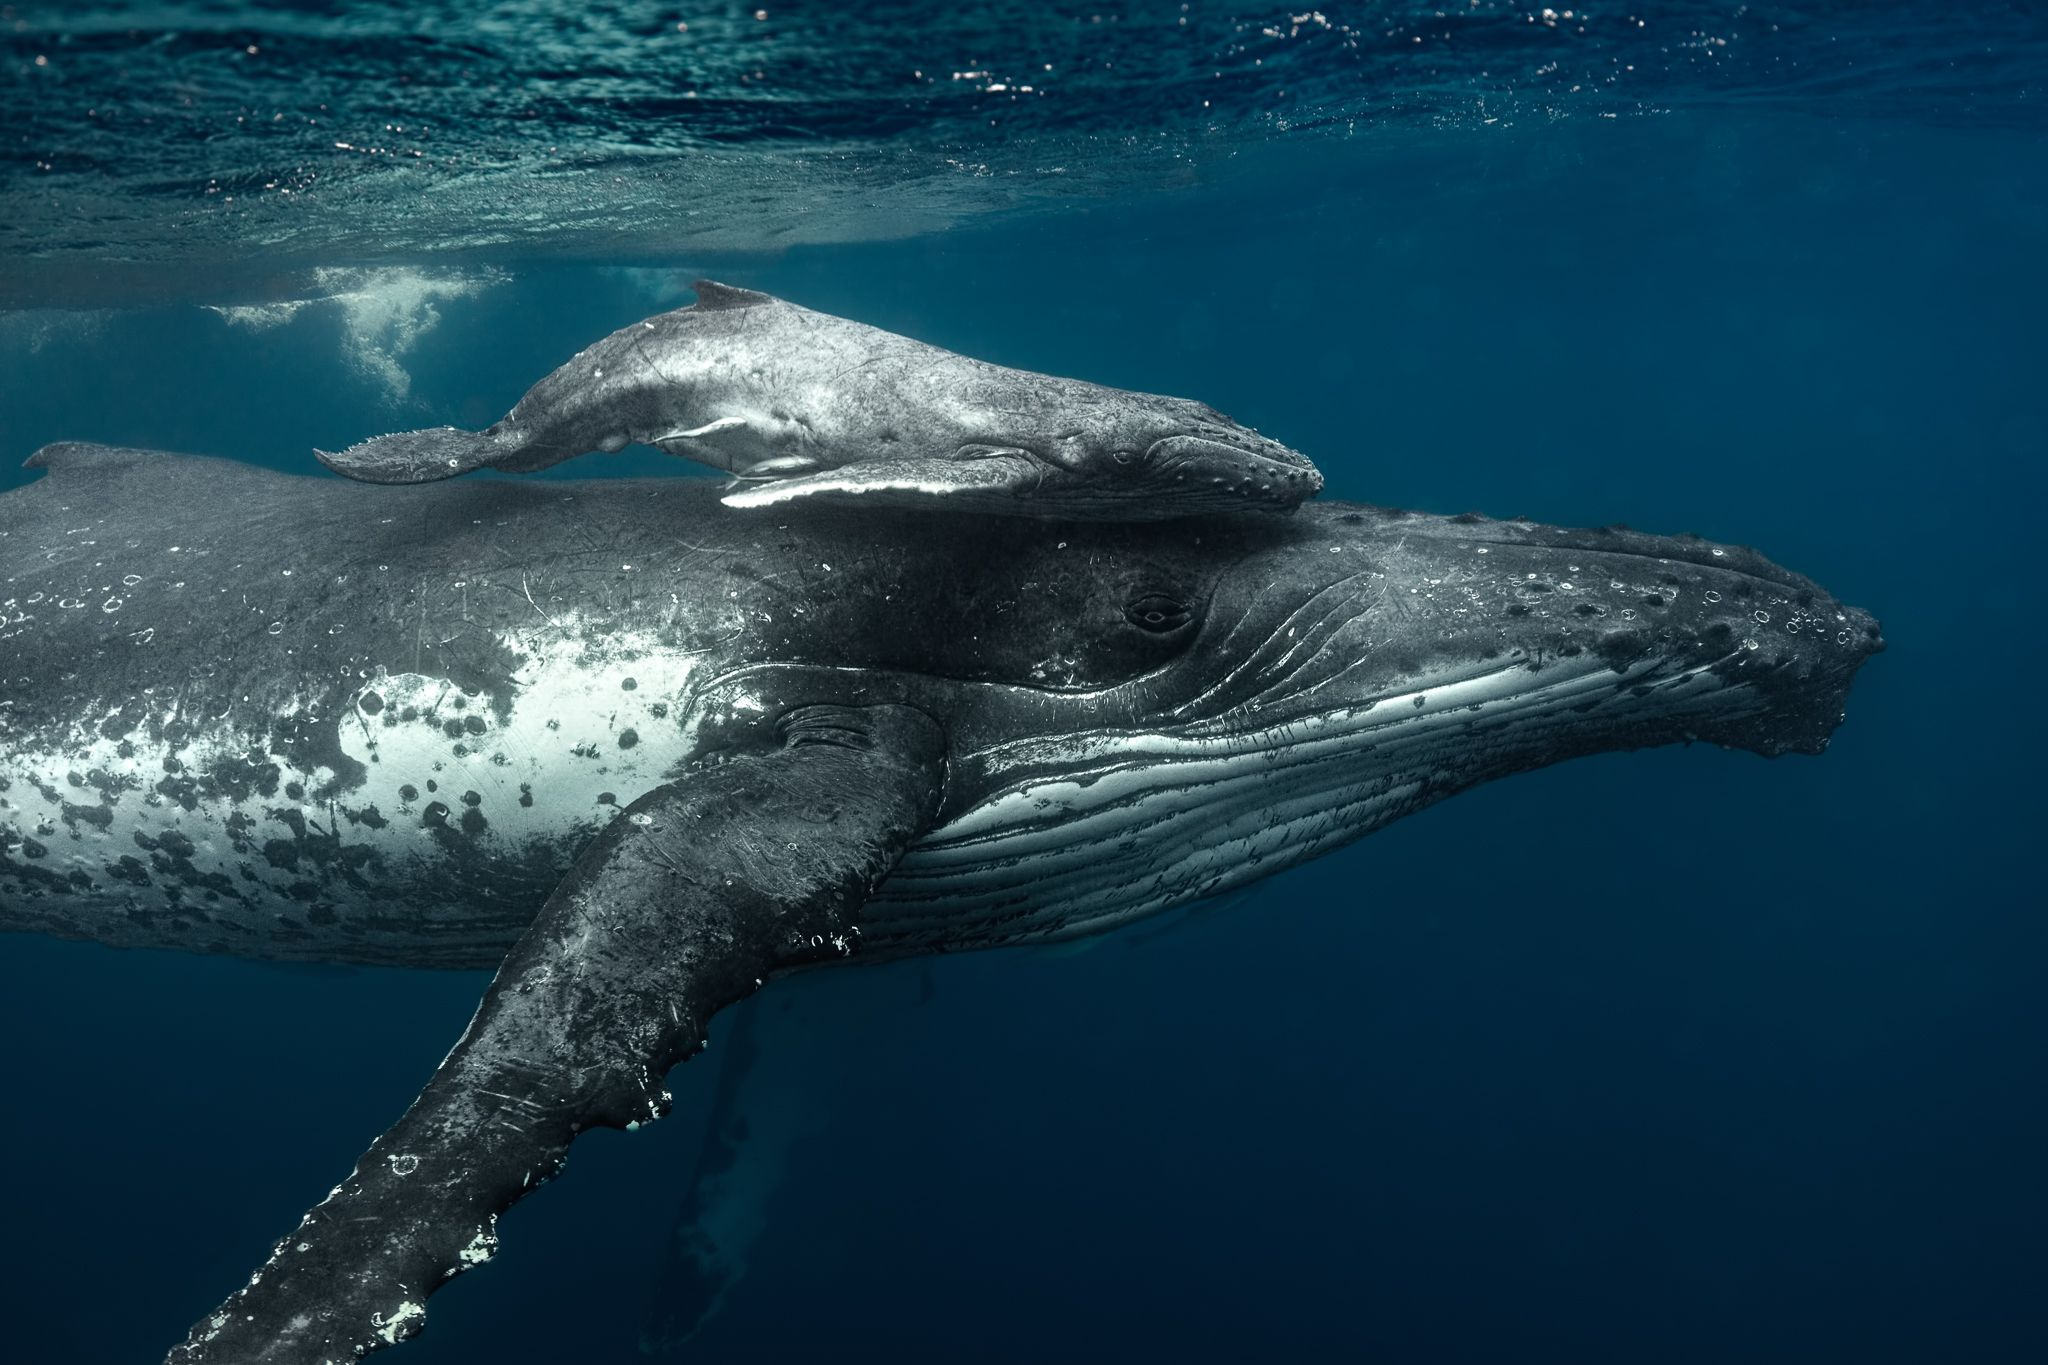 A humpback whale supports her very young calf near the ocean's surface. Though smaller than blue whales, humpback calves are born already about 10 feet long and weighing up to a ton.